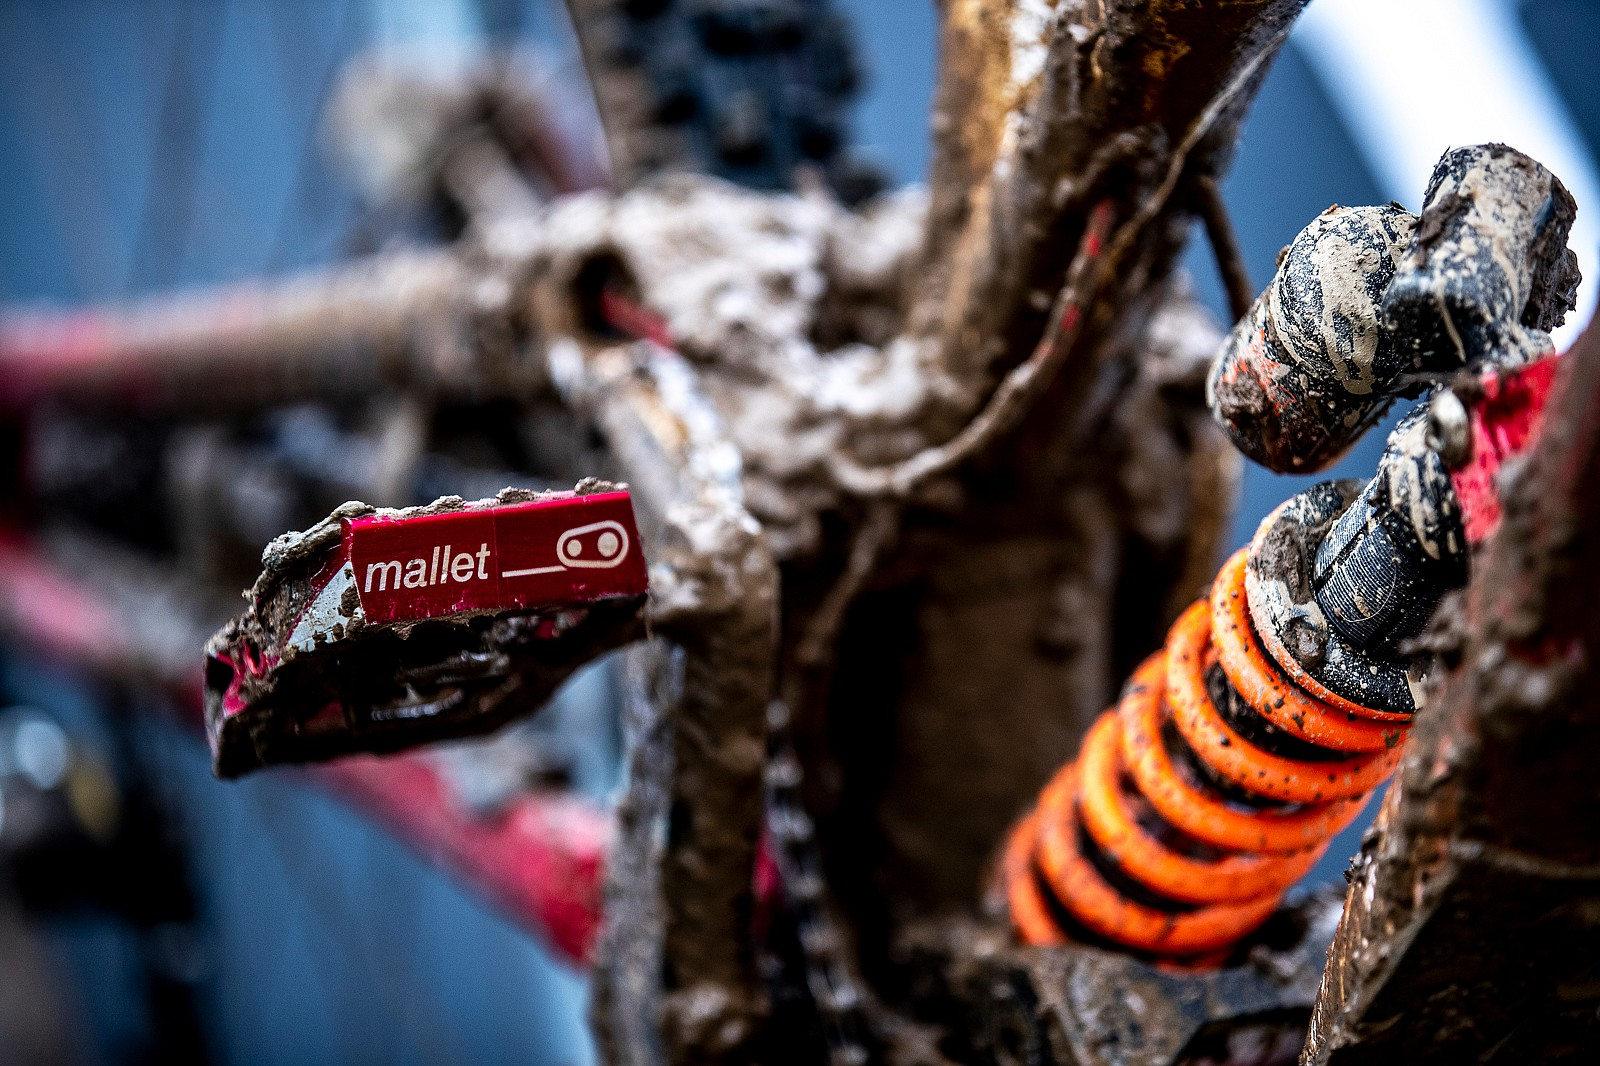 CrankBros Mallet Pedals - WINNING BIKE: Camille Balanche's Commencal Supreme from World Champs - Mountain Biking Pictures - Vital MTB